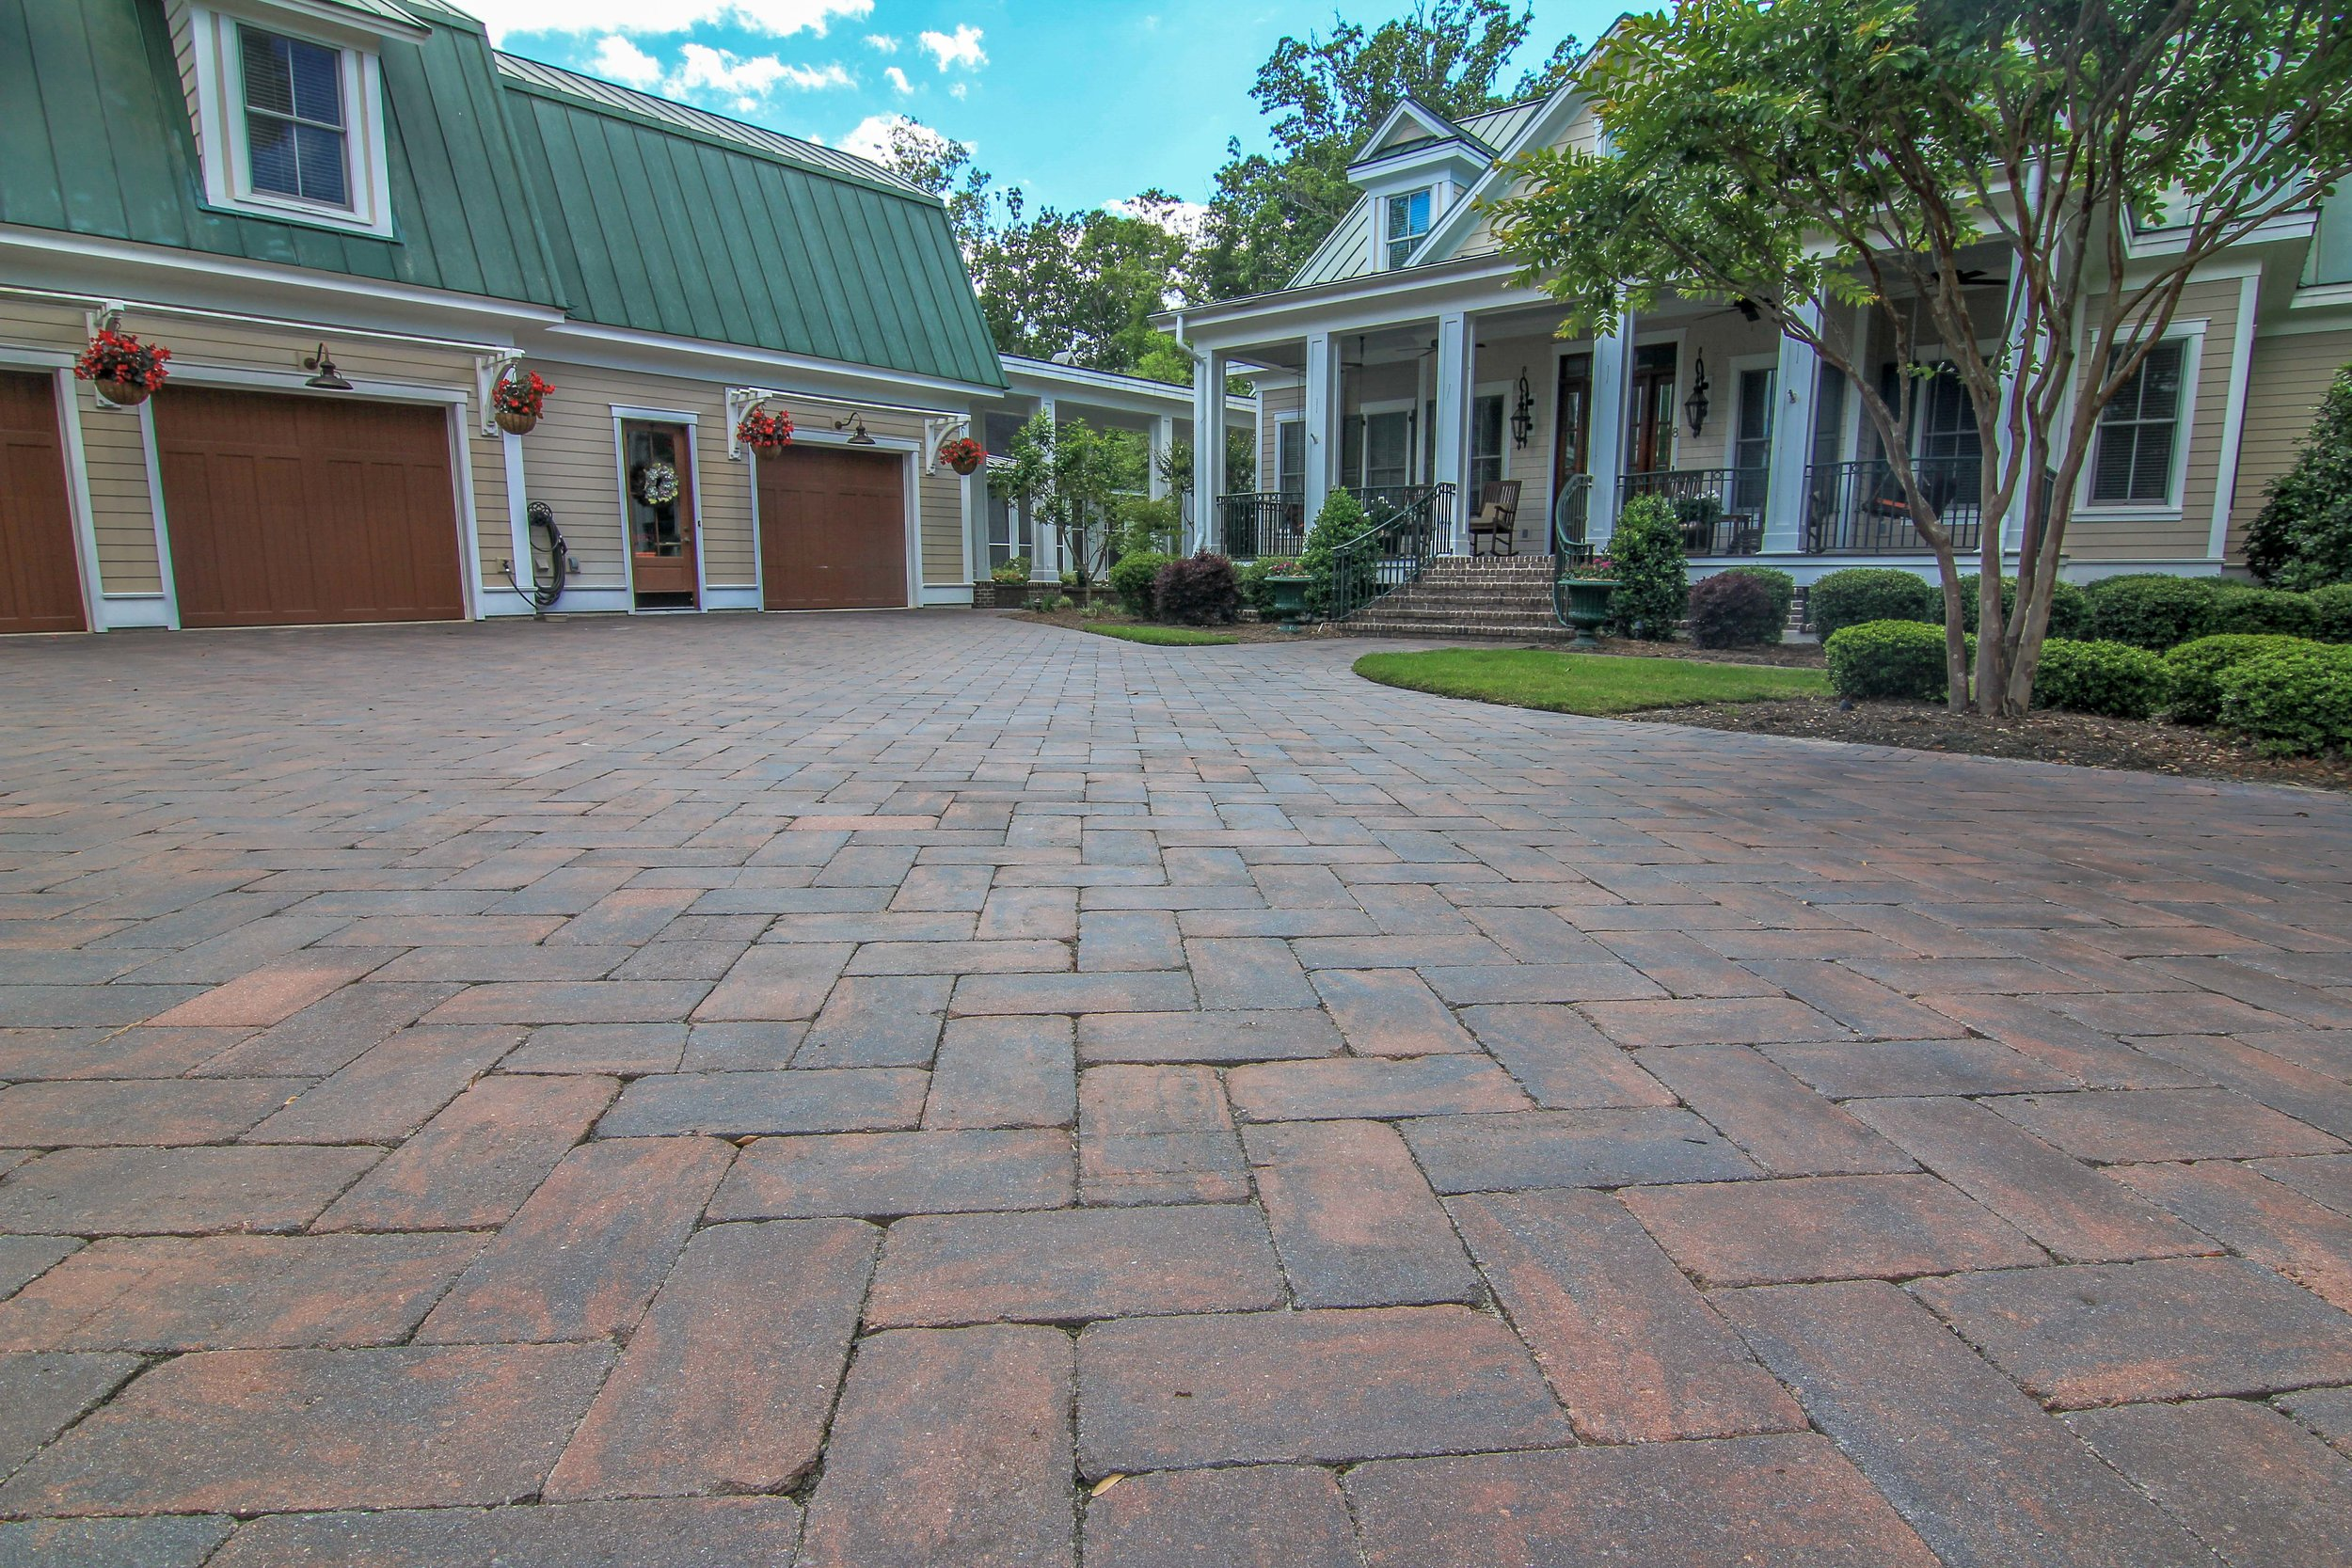 Did you know paver driveways are quick to install, easy to maintain and appealing to look at! Get rid of that boring concrete and install pavers!